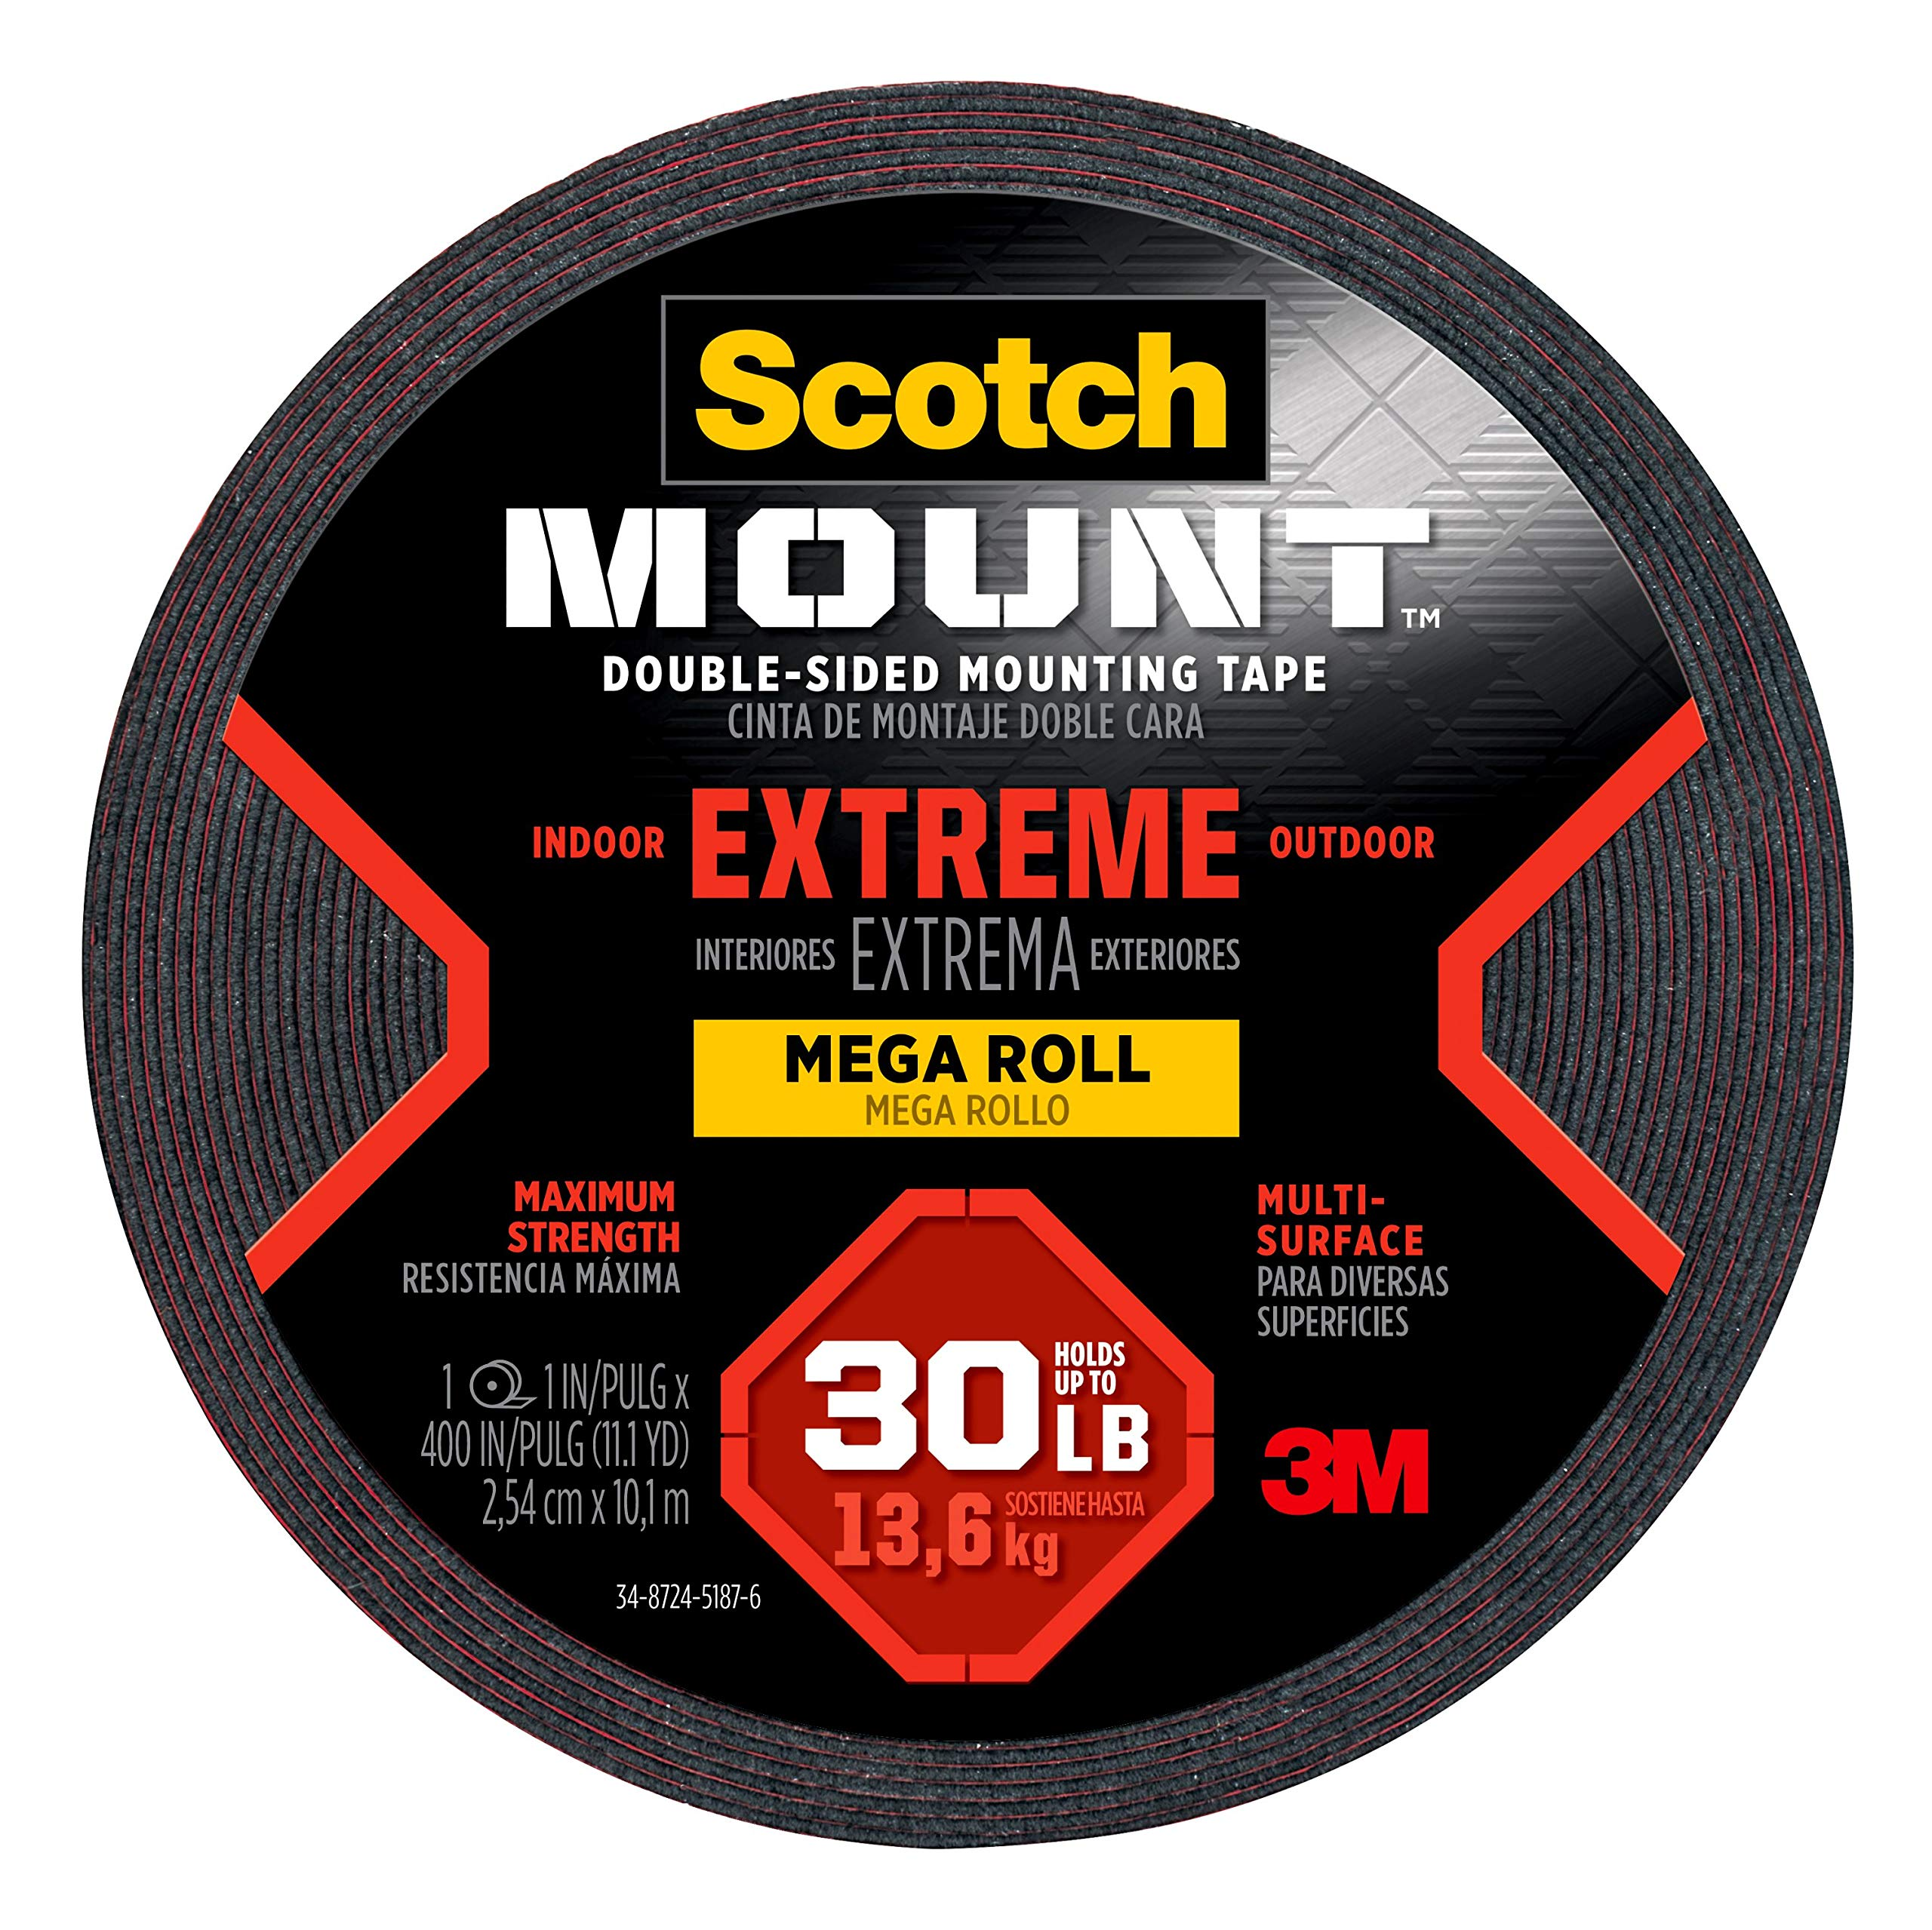 Scotch-Mount Extreme Double-Sided Mounting Tape Mega Roll 414H-Long-DC, 1 in x 400 in